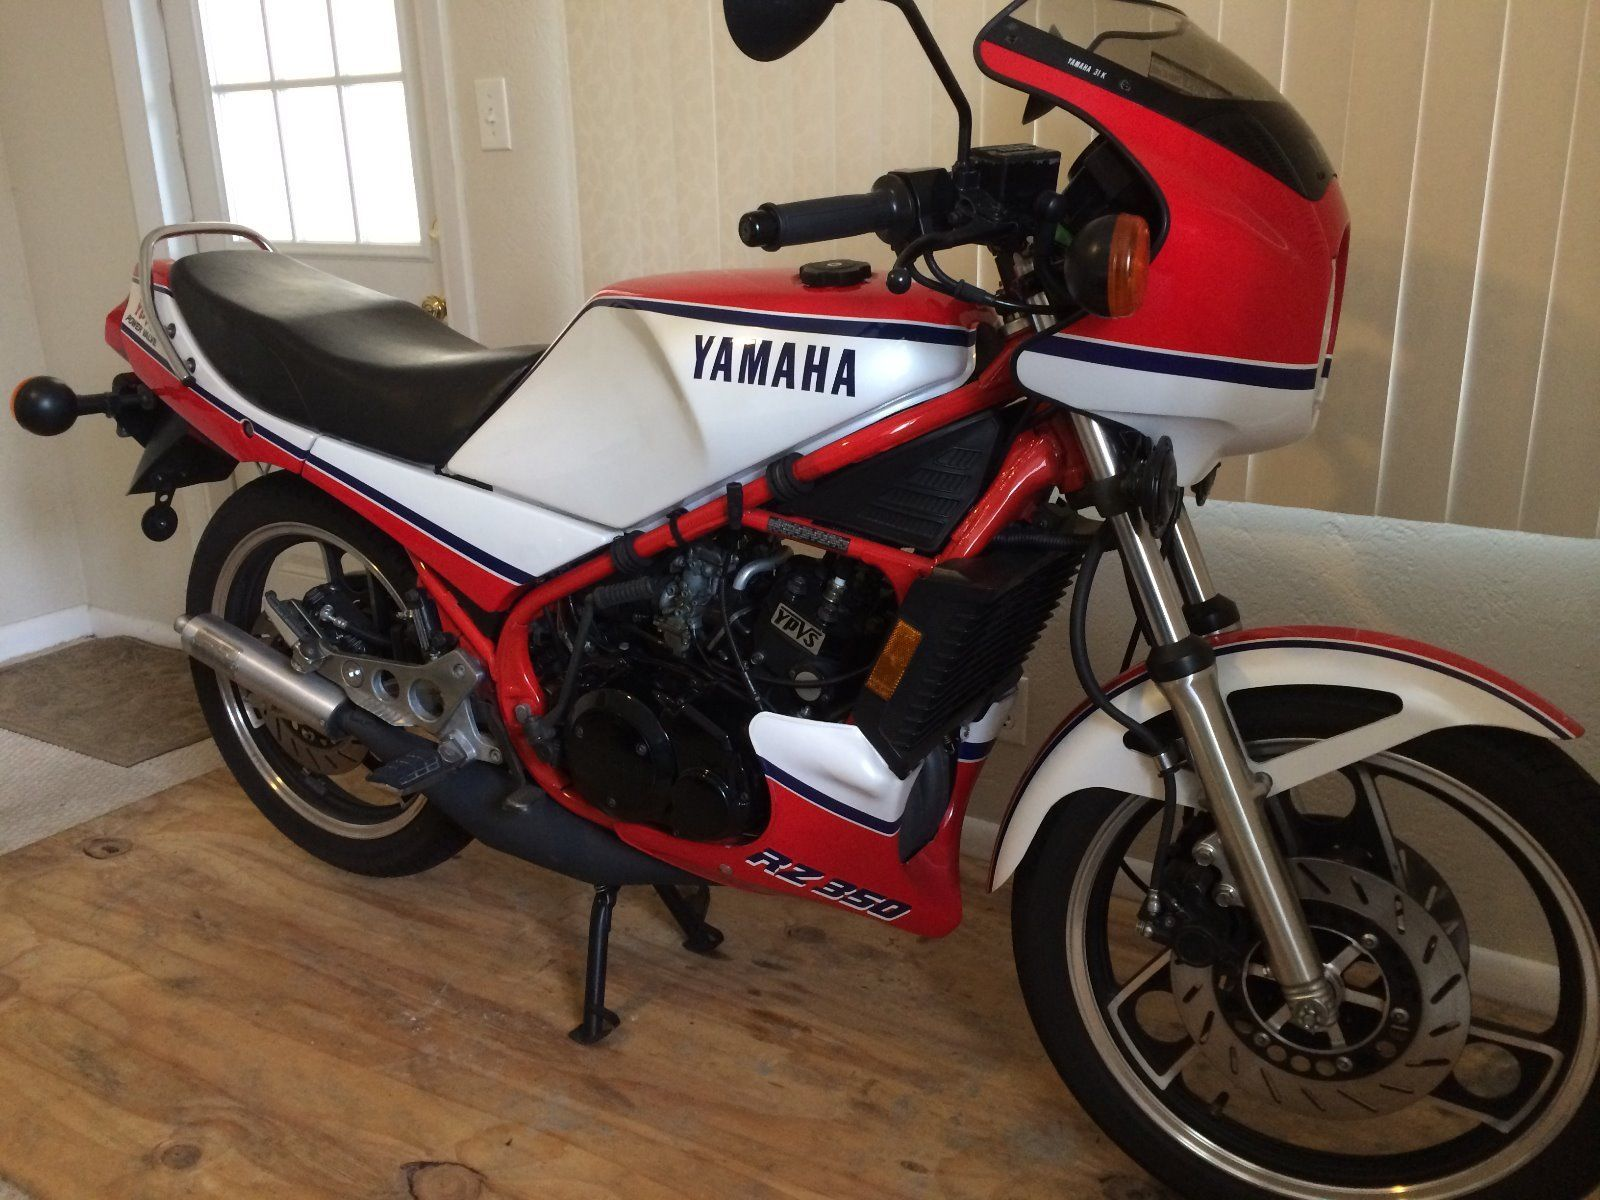 1984 yamaha rz350 with only 3 984 miles in florida rare for Yamaha rz for sale